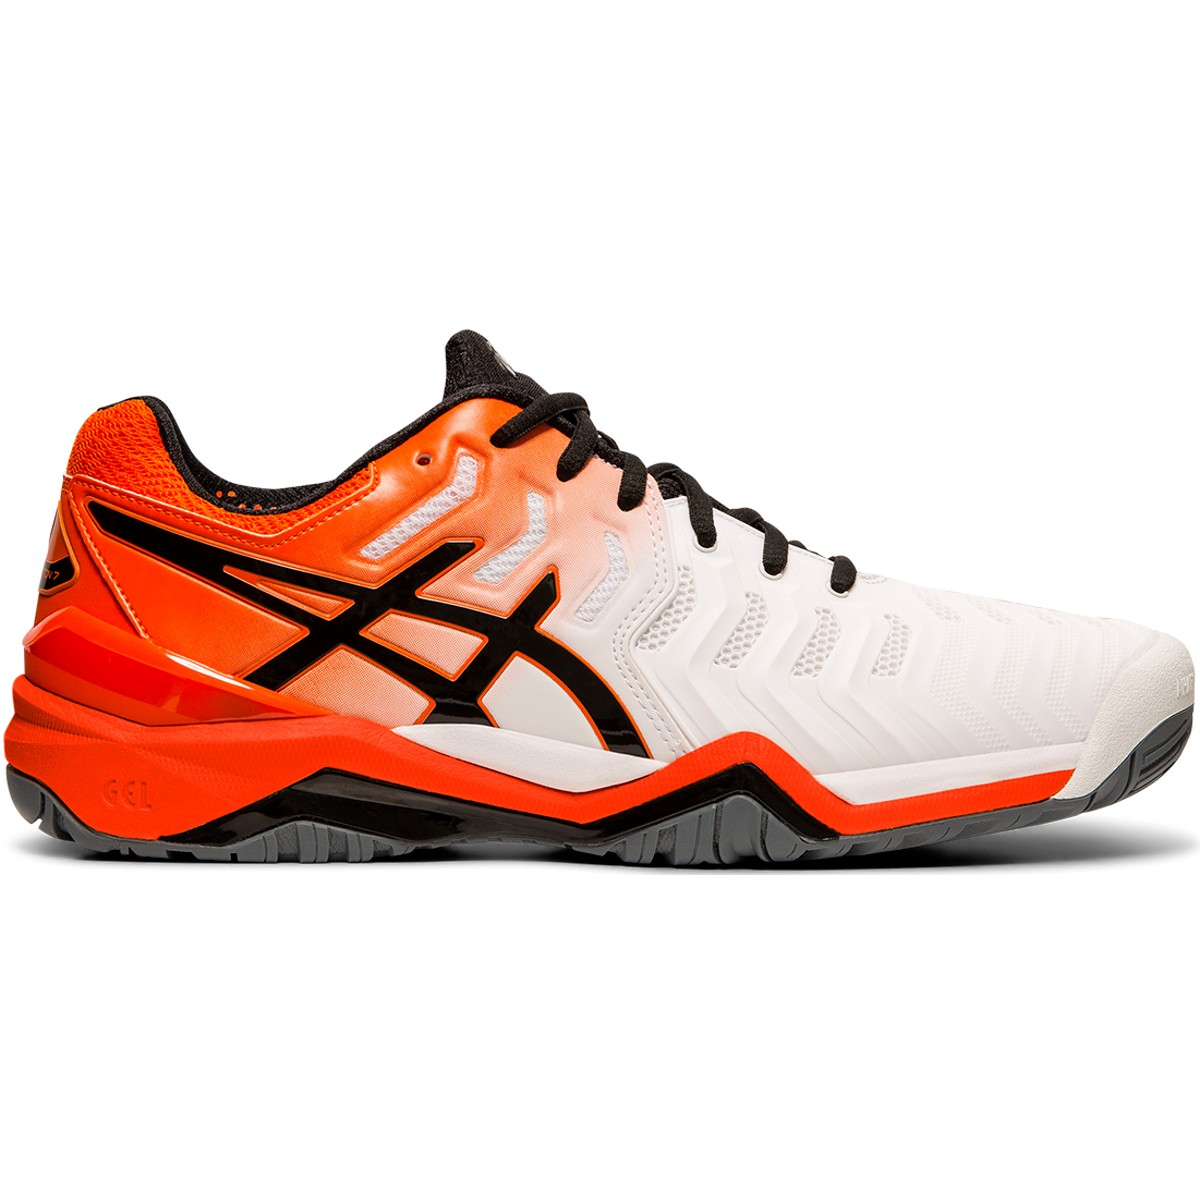 Asics Surfaces Homme Chaussures Toutes Resolution 7 OZ80kXwPNn